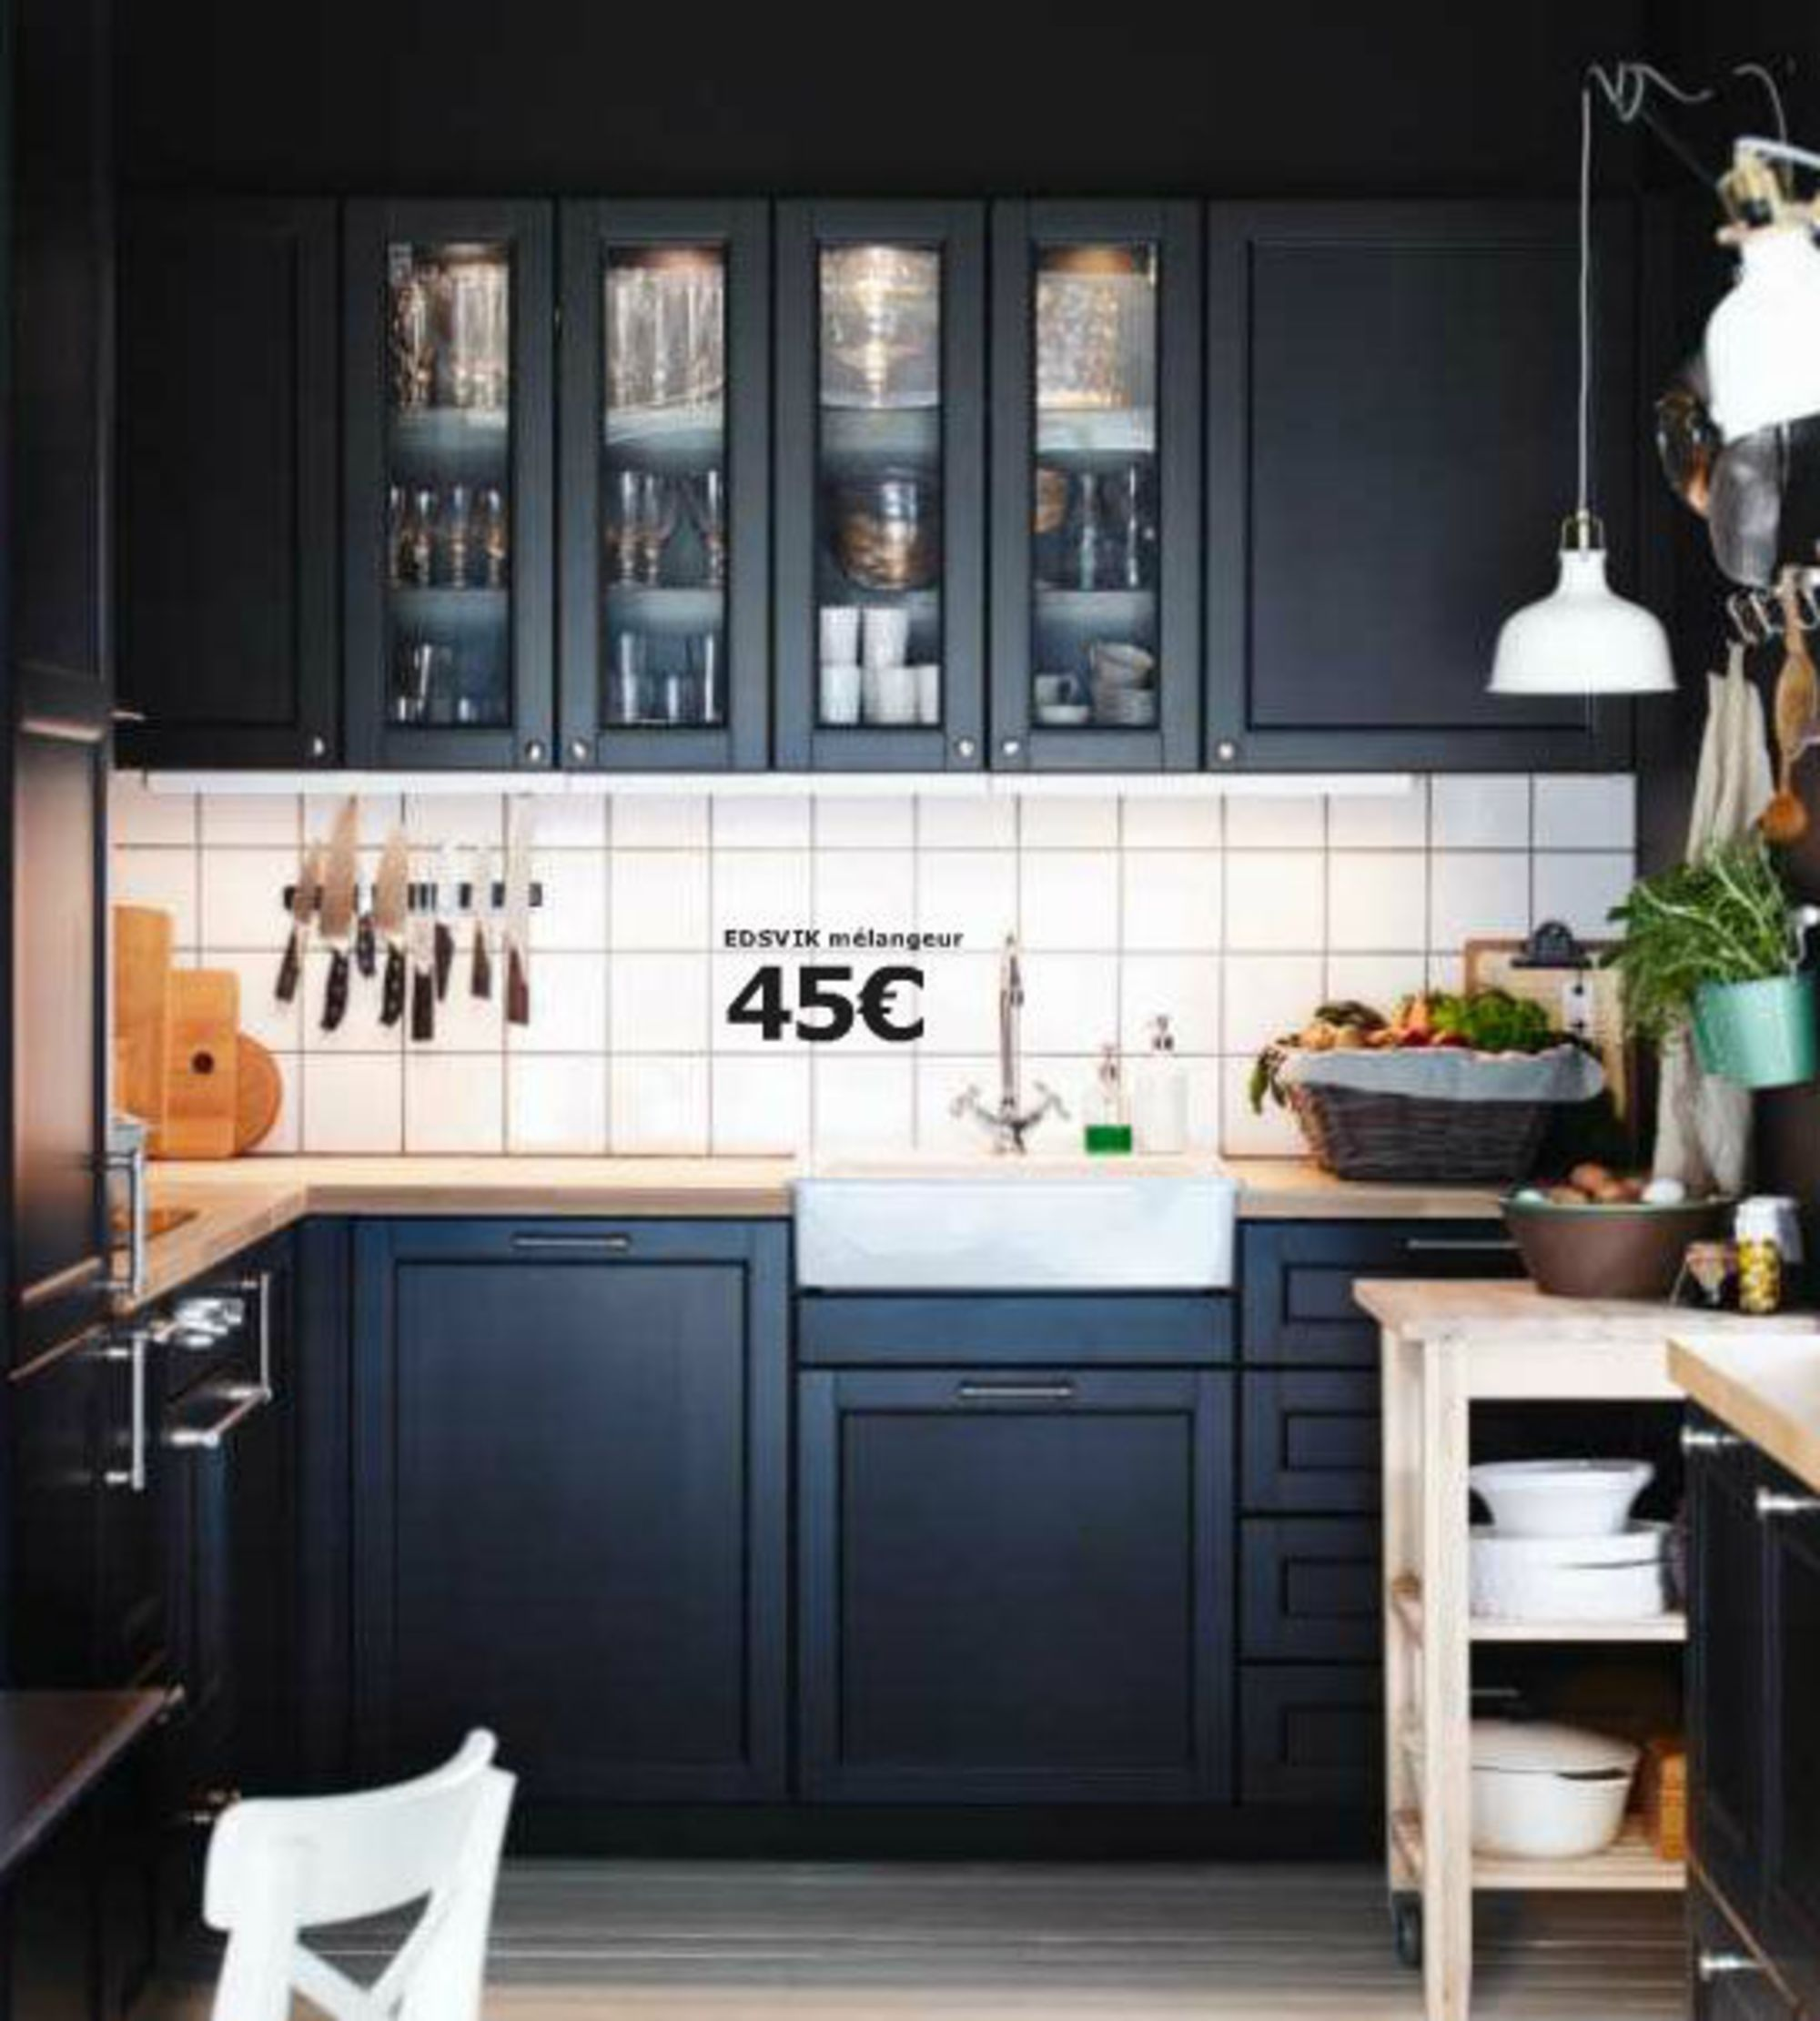 cuisine ikea consultez le catalogue cuisine ikea pinterest kitchens black kitchens and. Black Bedroom Furniture Sets. Home Design Ideas